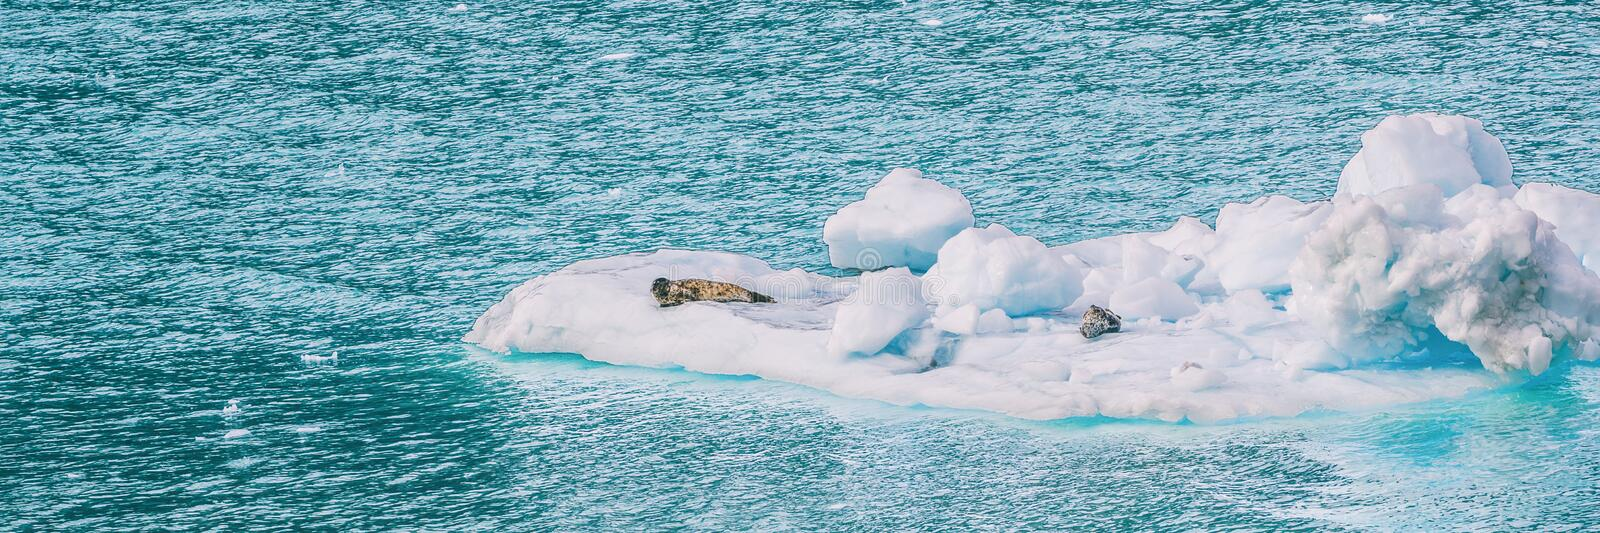 Alaska glacier bay harbor seals on iceberg floating nearby glaciers on on blue sea. Cruise ship to Glacier Bay National Park view royalty free stock photography